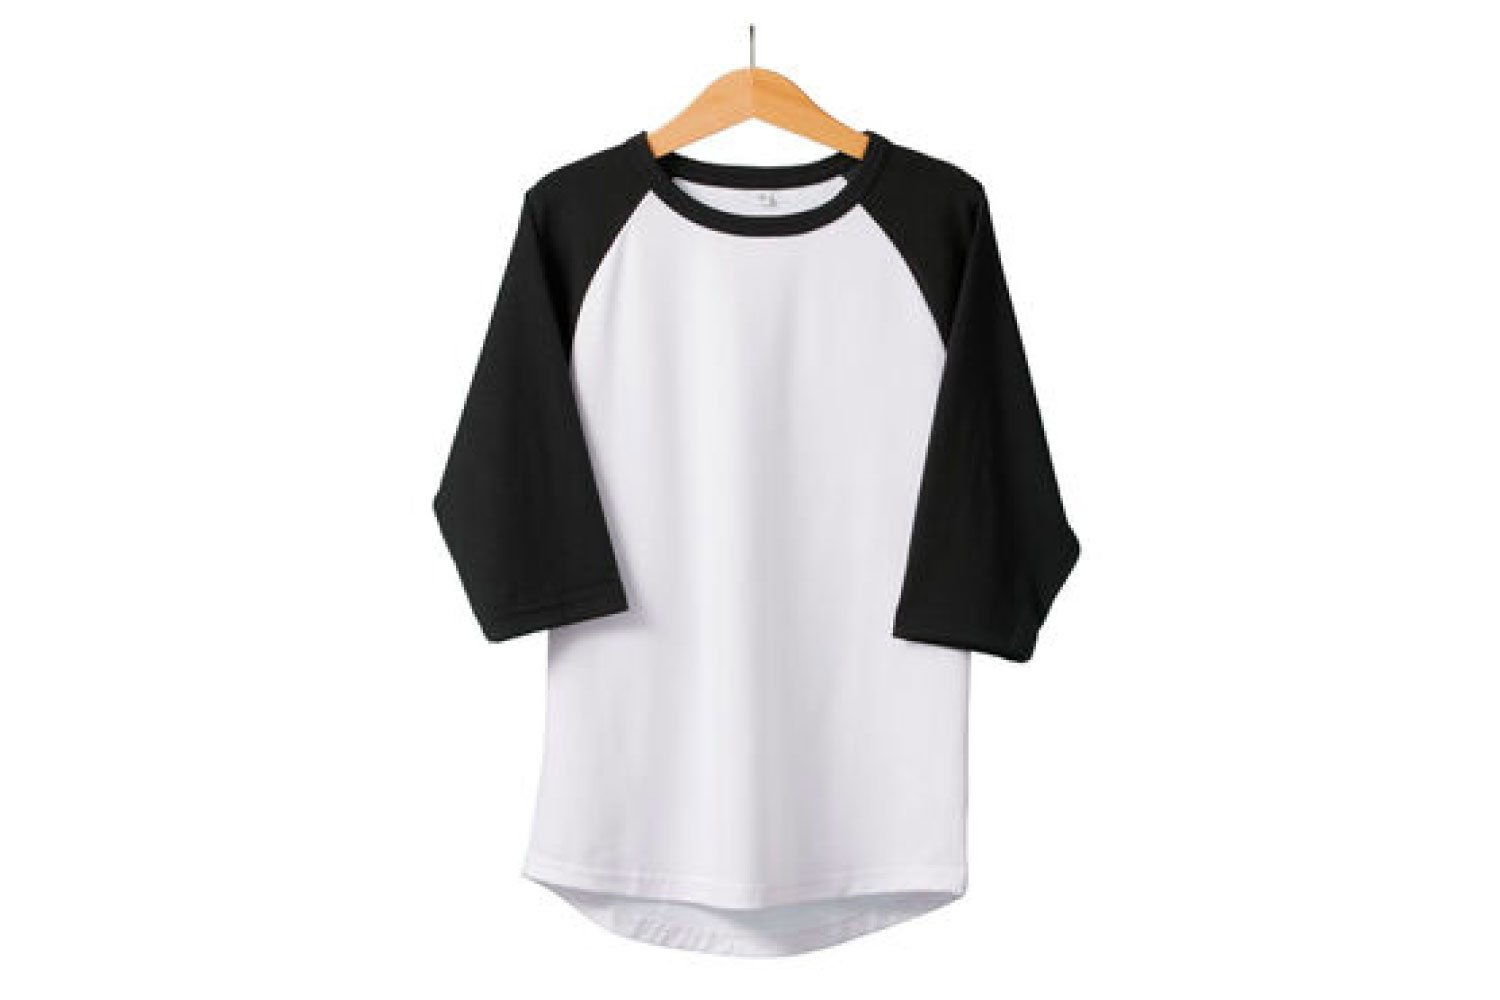 Raglan with white body and black sleeves